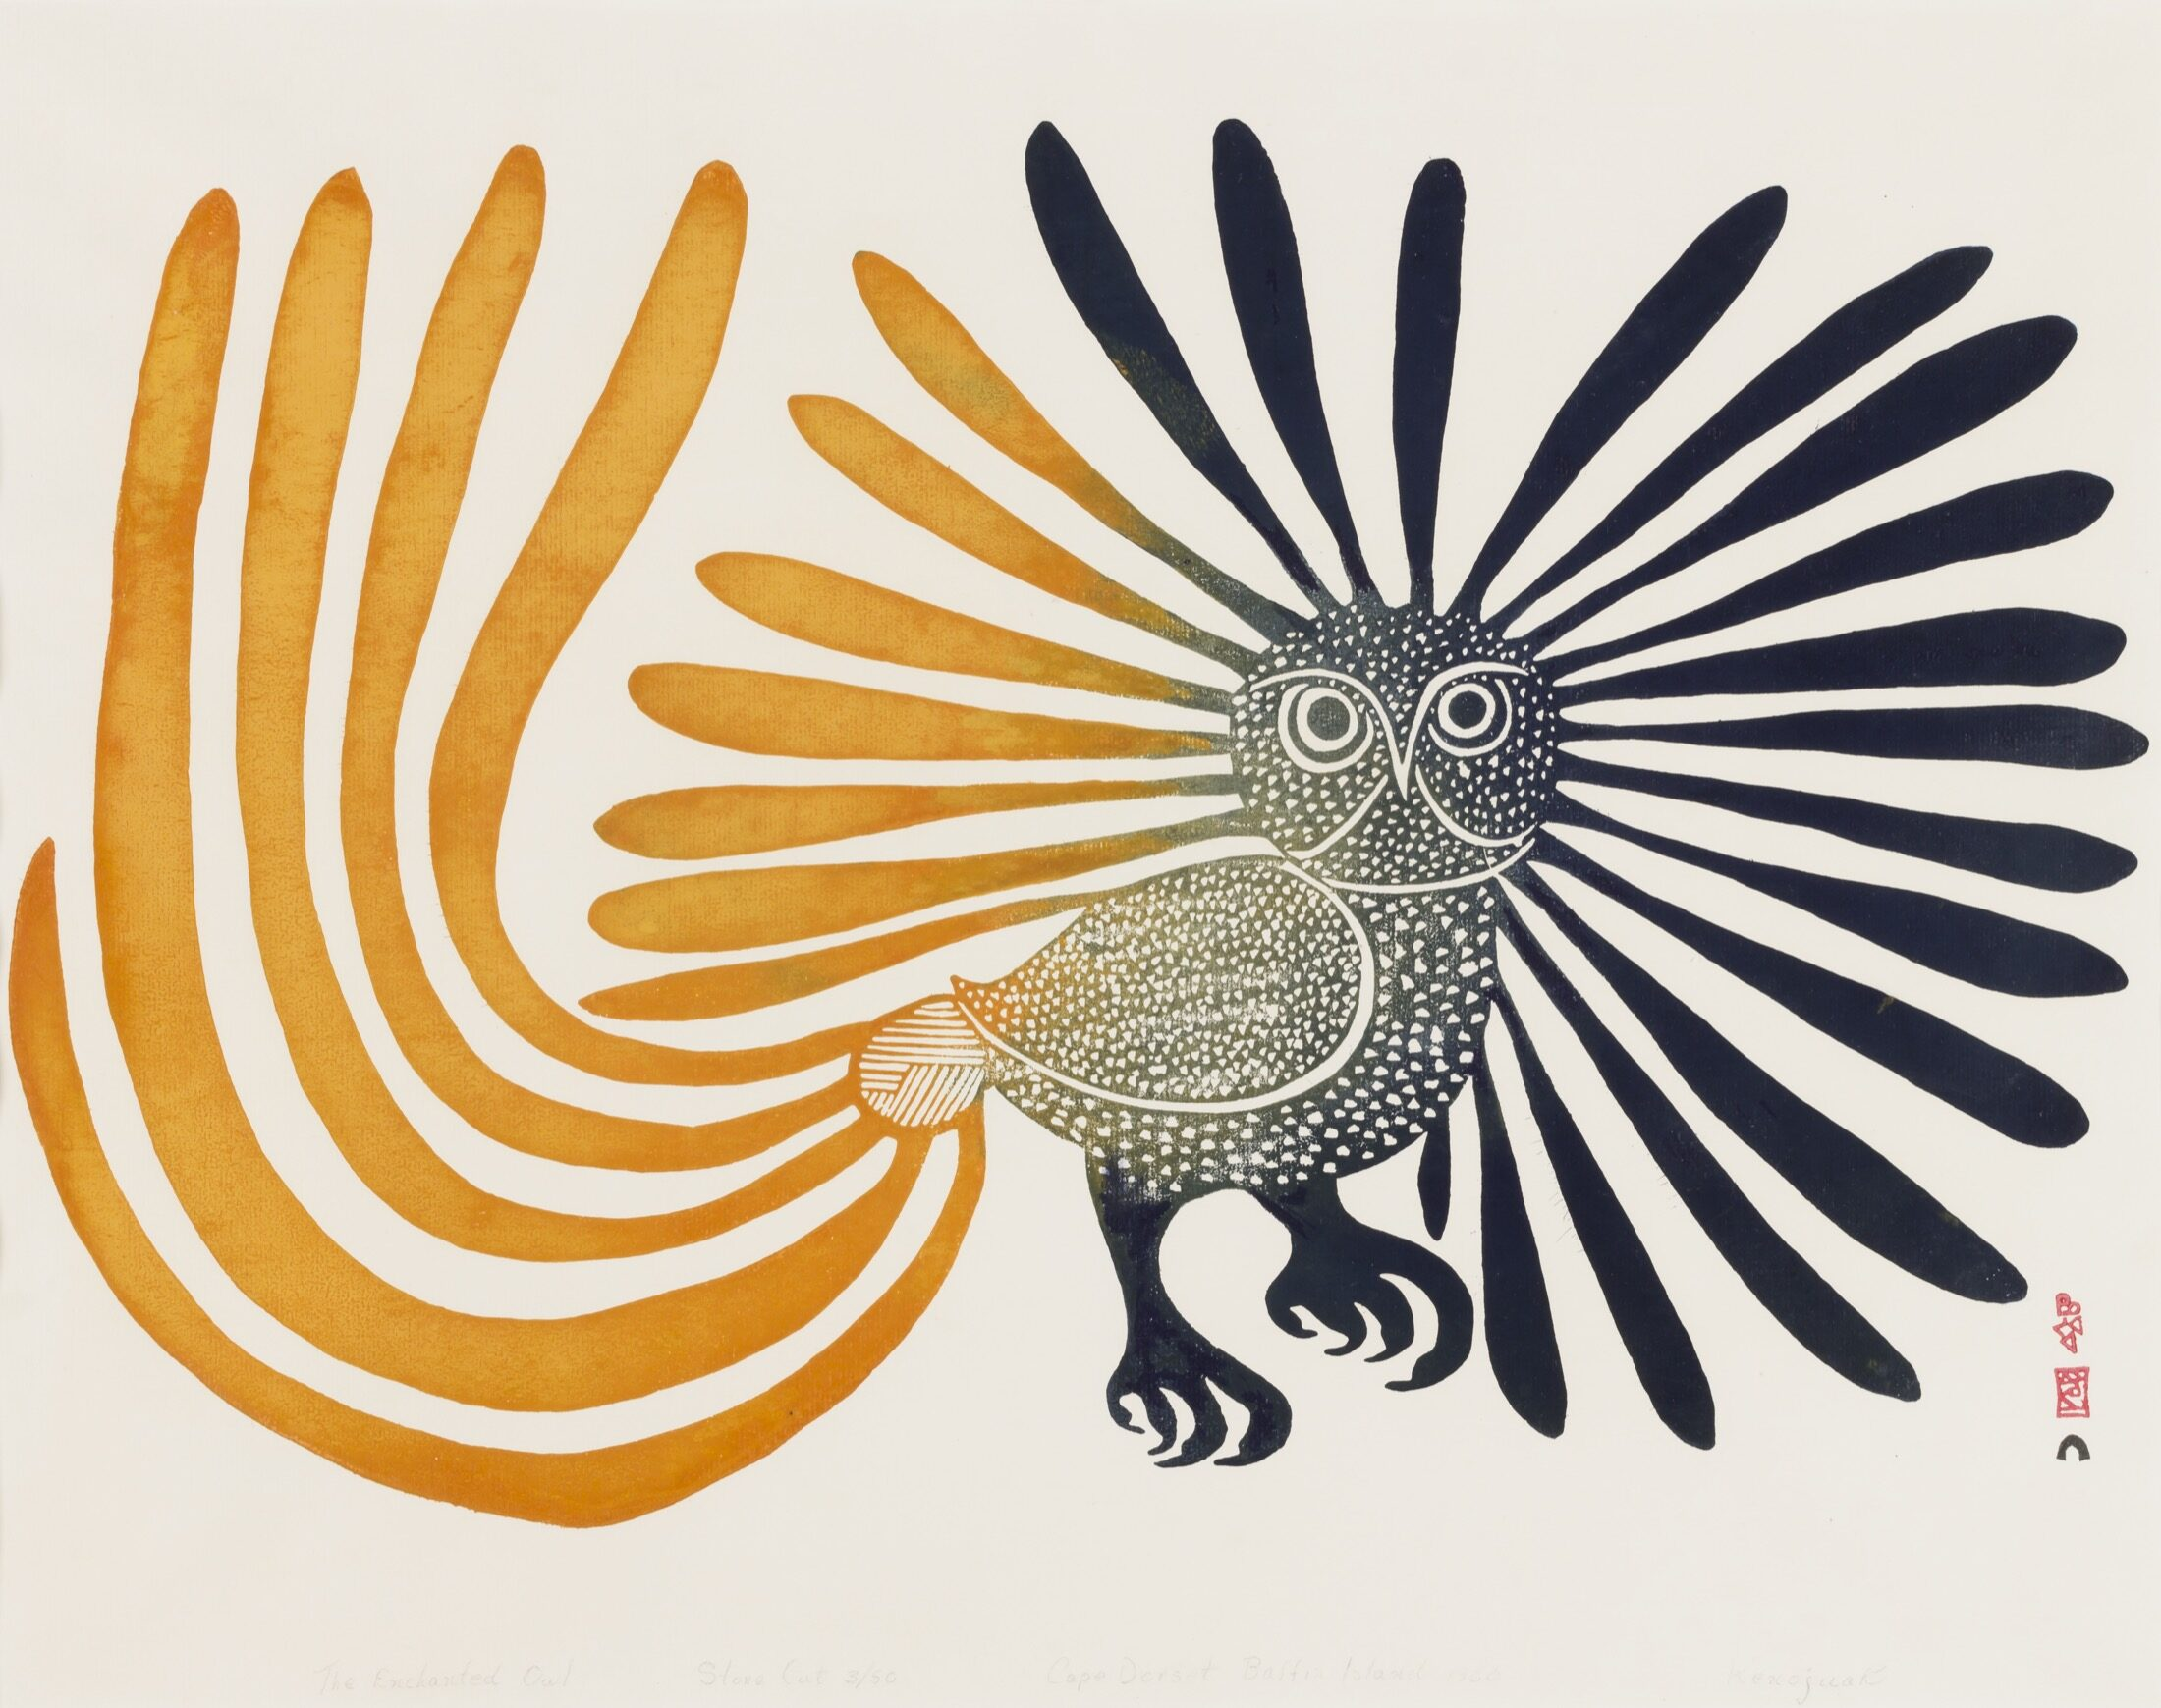 Kenojuak Ashevak, The Enchanted Owl, 1960, stonecut. Power Family Collection, Philip (AB '60, Regent '87–'98) and Kathy Power. Reproduced with the permission of Dorset Fine Arts. Photography: Charlie Edwards